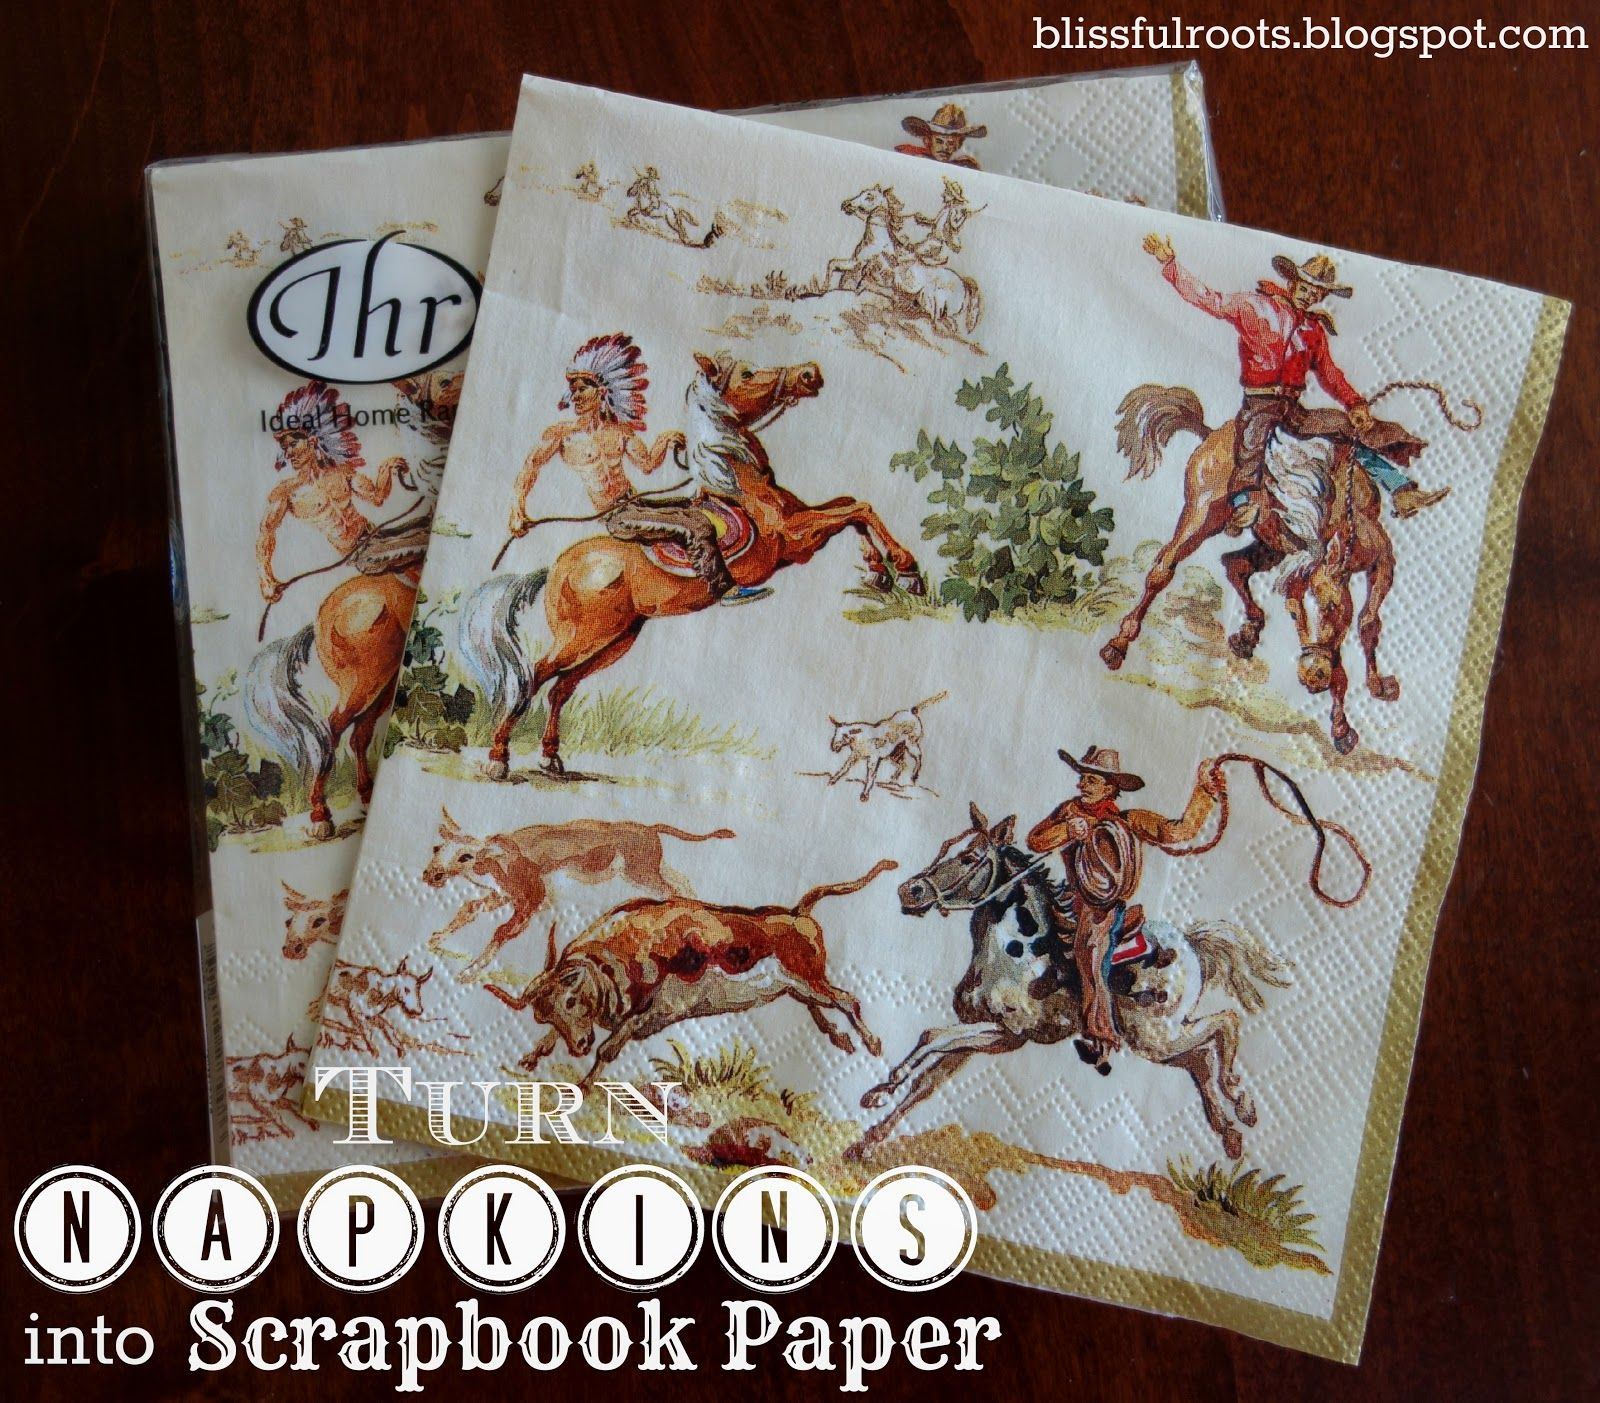 How to turn napkins tissue paper into scrapbook paper crafty how to turn napkins tissue paper into scrapbook paper jeuxipadfo Choice Image